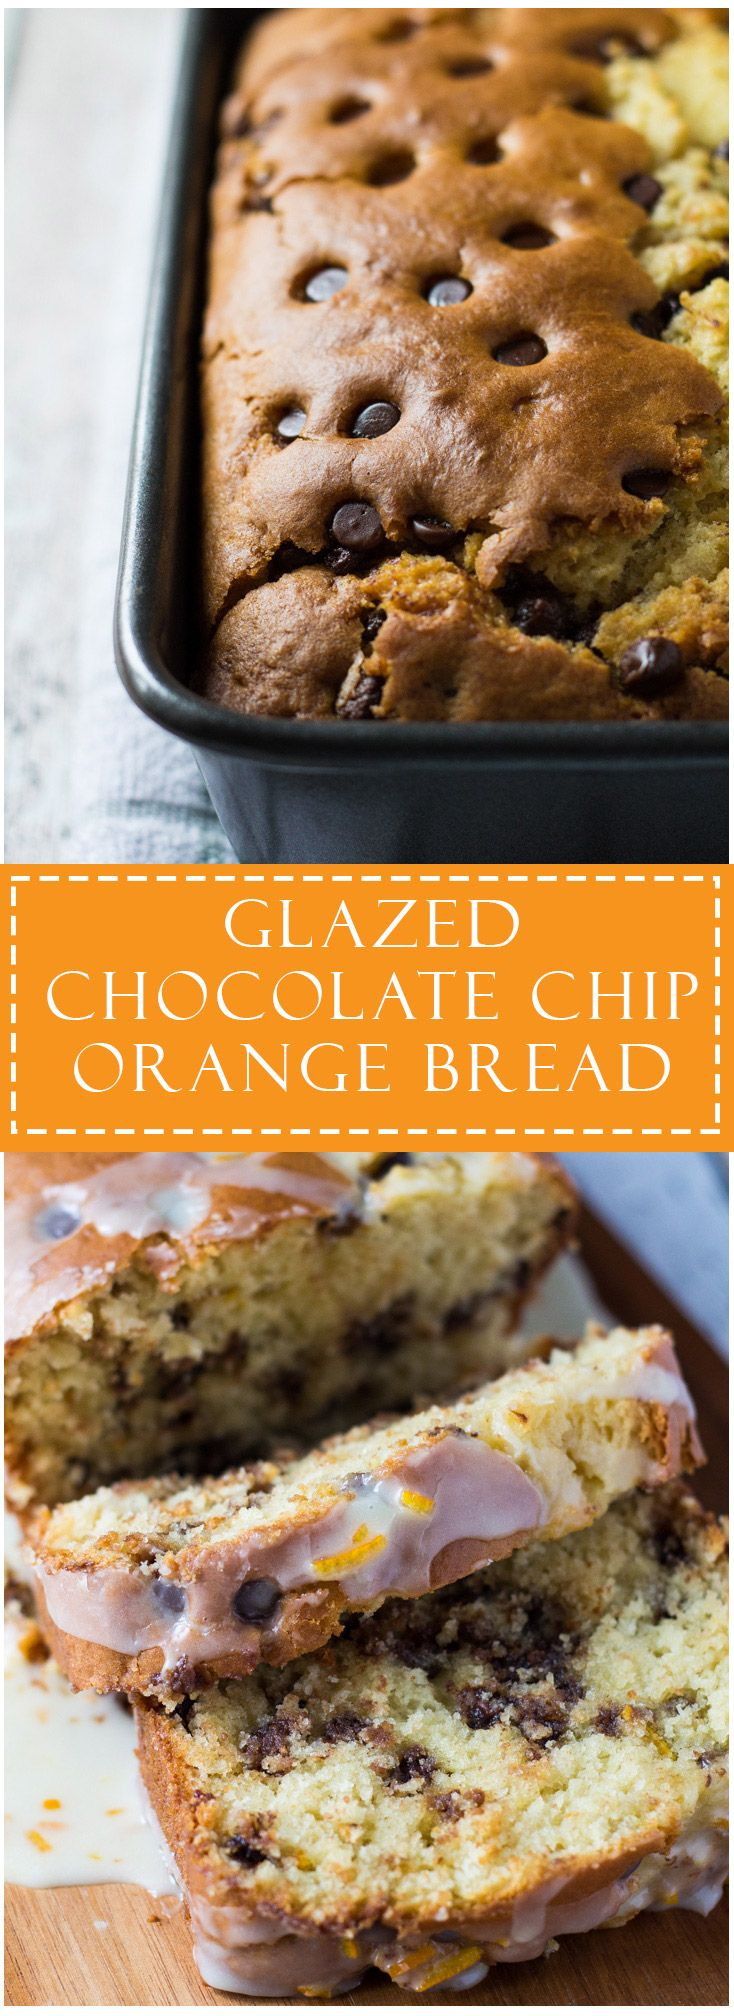 Glazed Chocolate Chip Orange Bread | Marsha's Baking Addiction